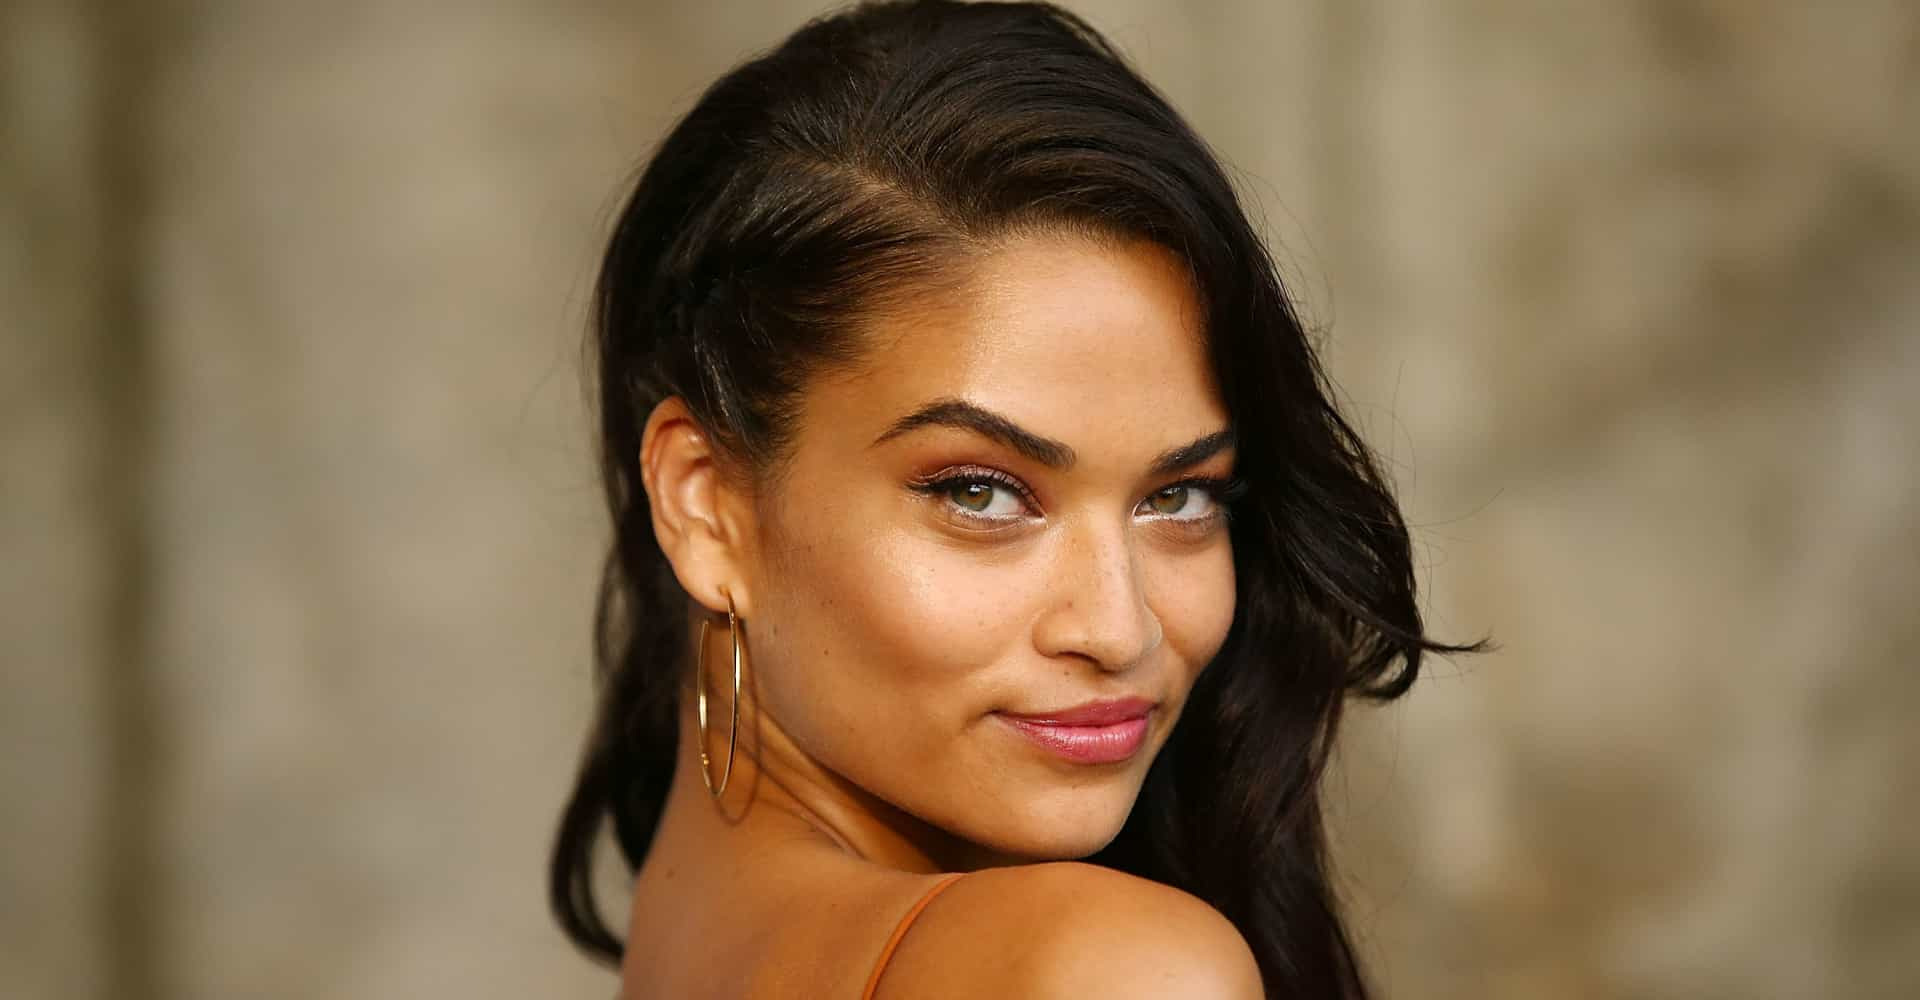 Australian Victoria's Secret model was bullied for being mixed-race